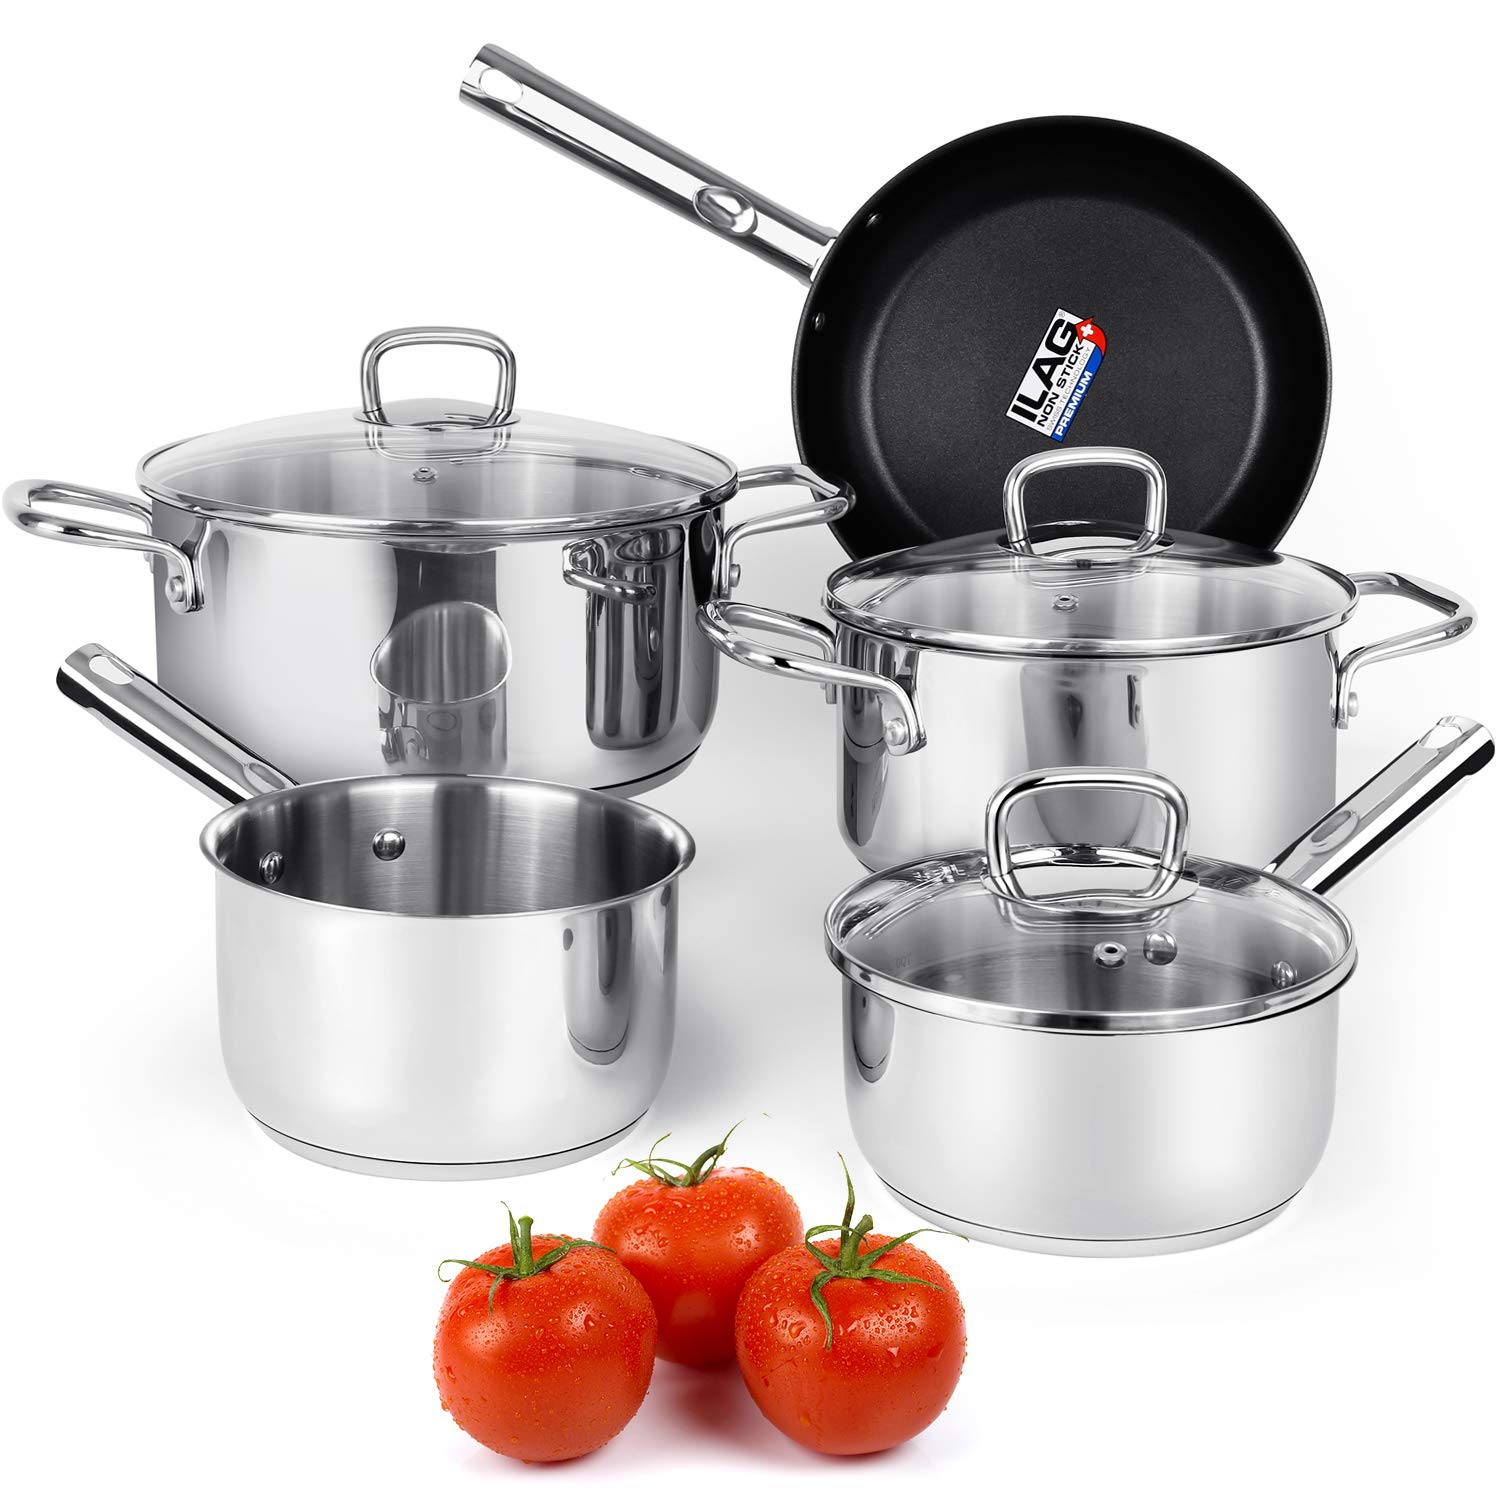 Viewee Cookware Set Stainless Steel Pots and Pans Sets with Nonstick Coated Skillet 8-Piece Kitchenware Set Dishwasher & Oven Safe Tri-Ply with Lids, PFOA Free Compatible to Multi-Stove Top for Home by Viewee